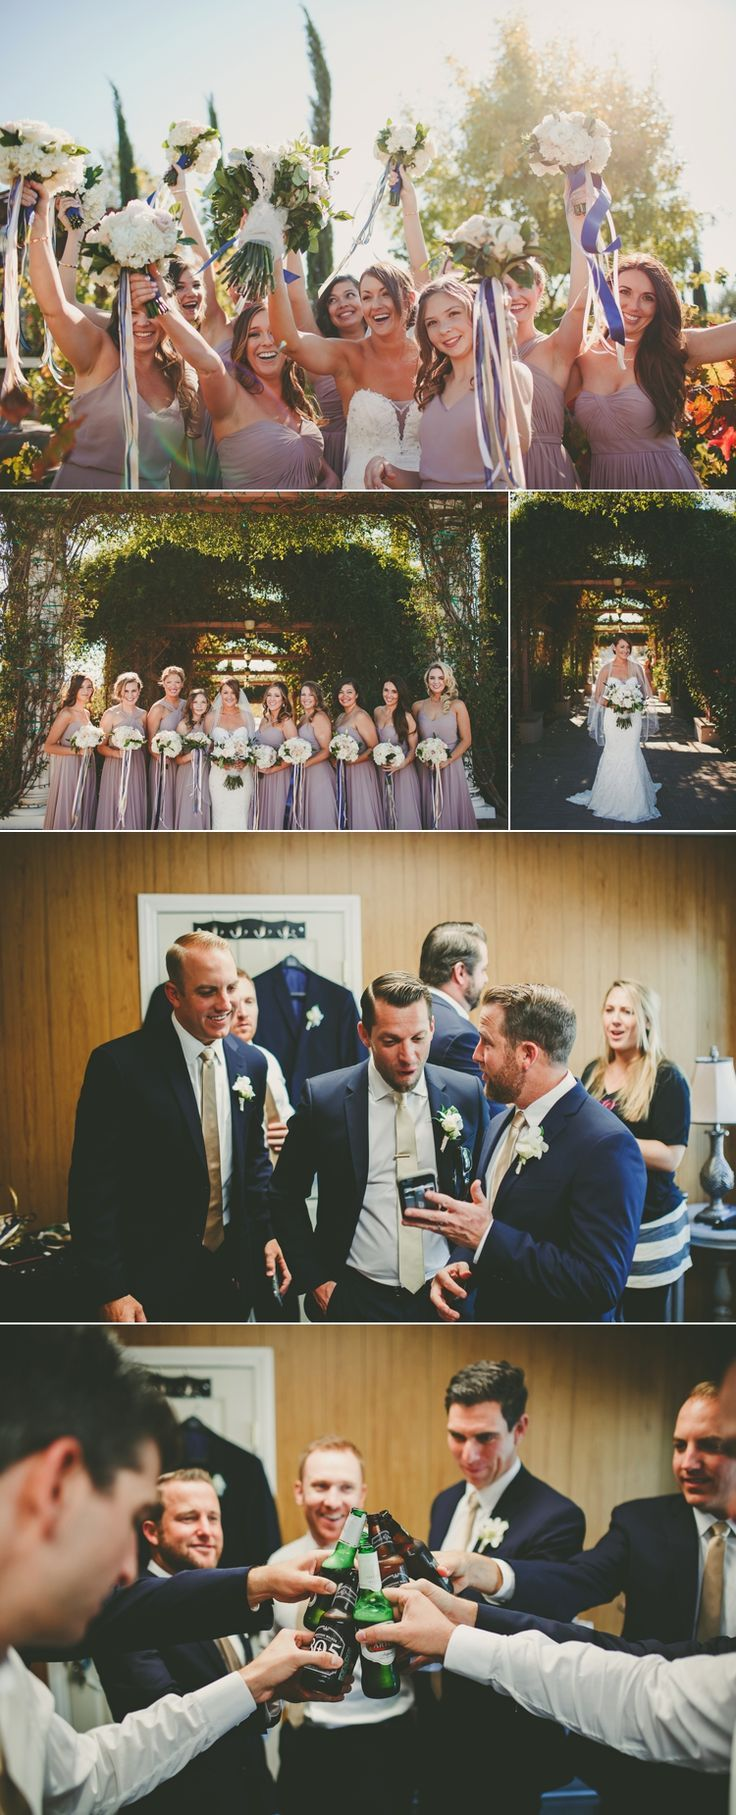 Photo collage from a vineyard wedding at Mount Palomar Winery in Temecula, California. #mountpalomarwinery